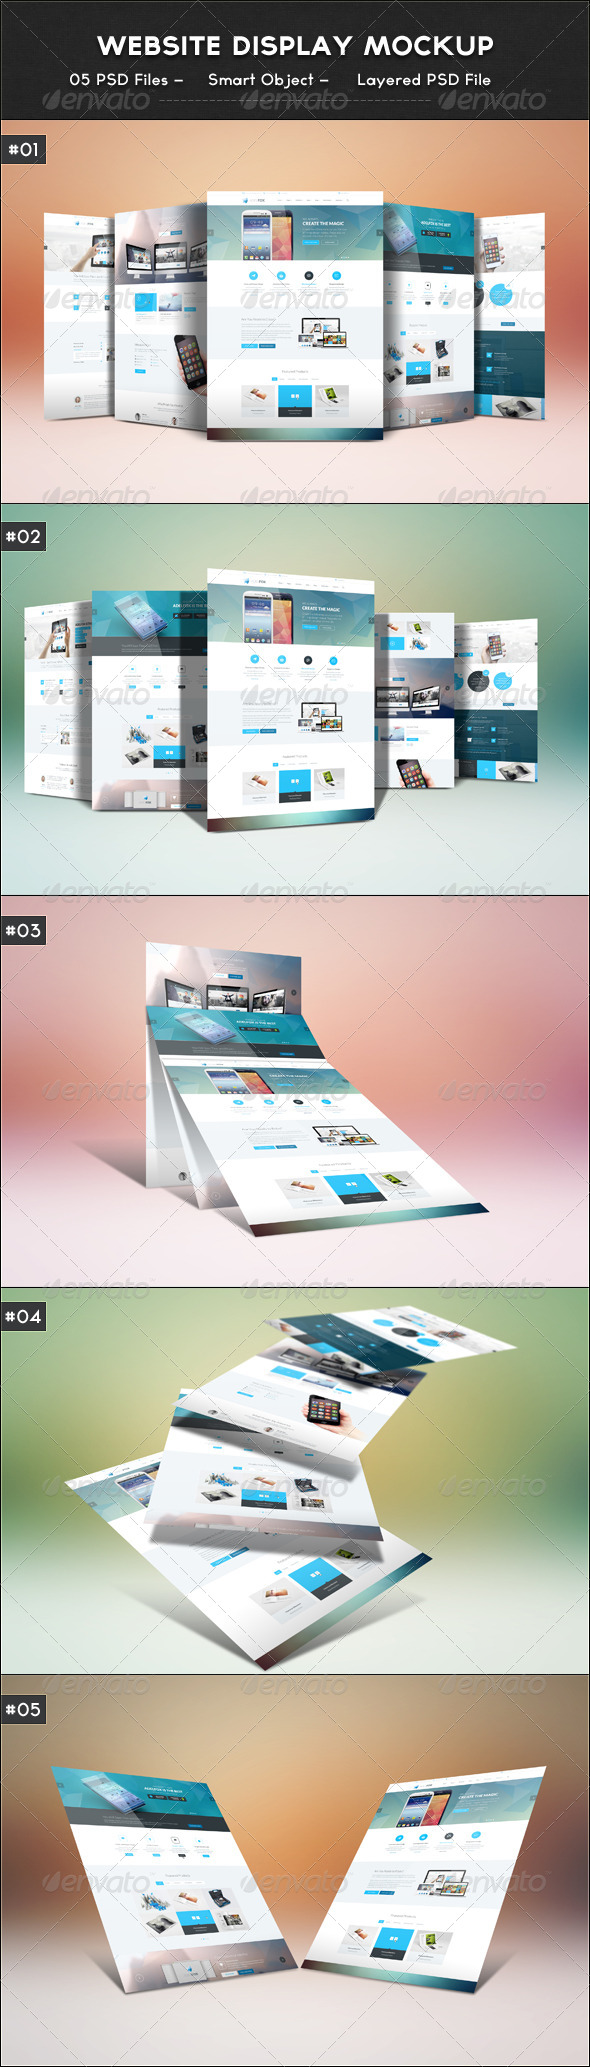 GraphicRiver Website Display Mockup 6536521